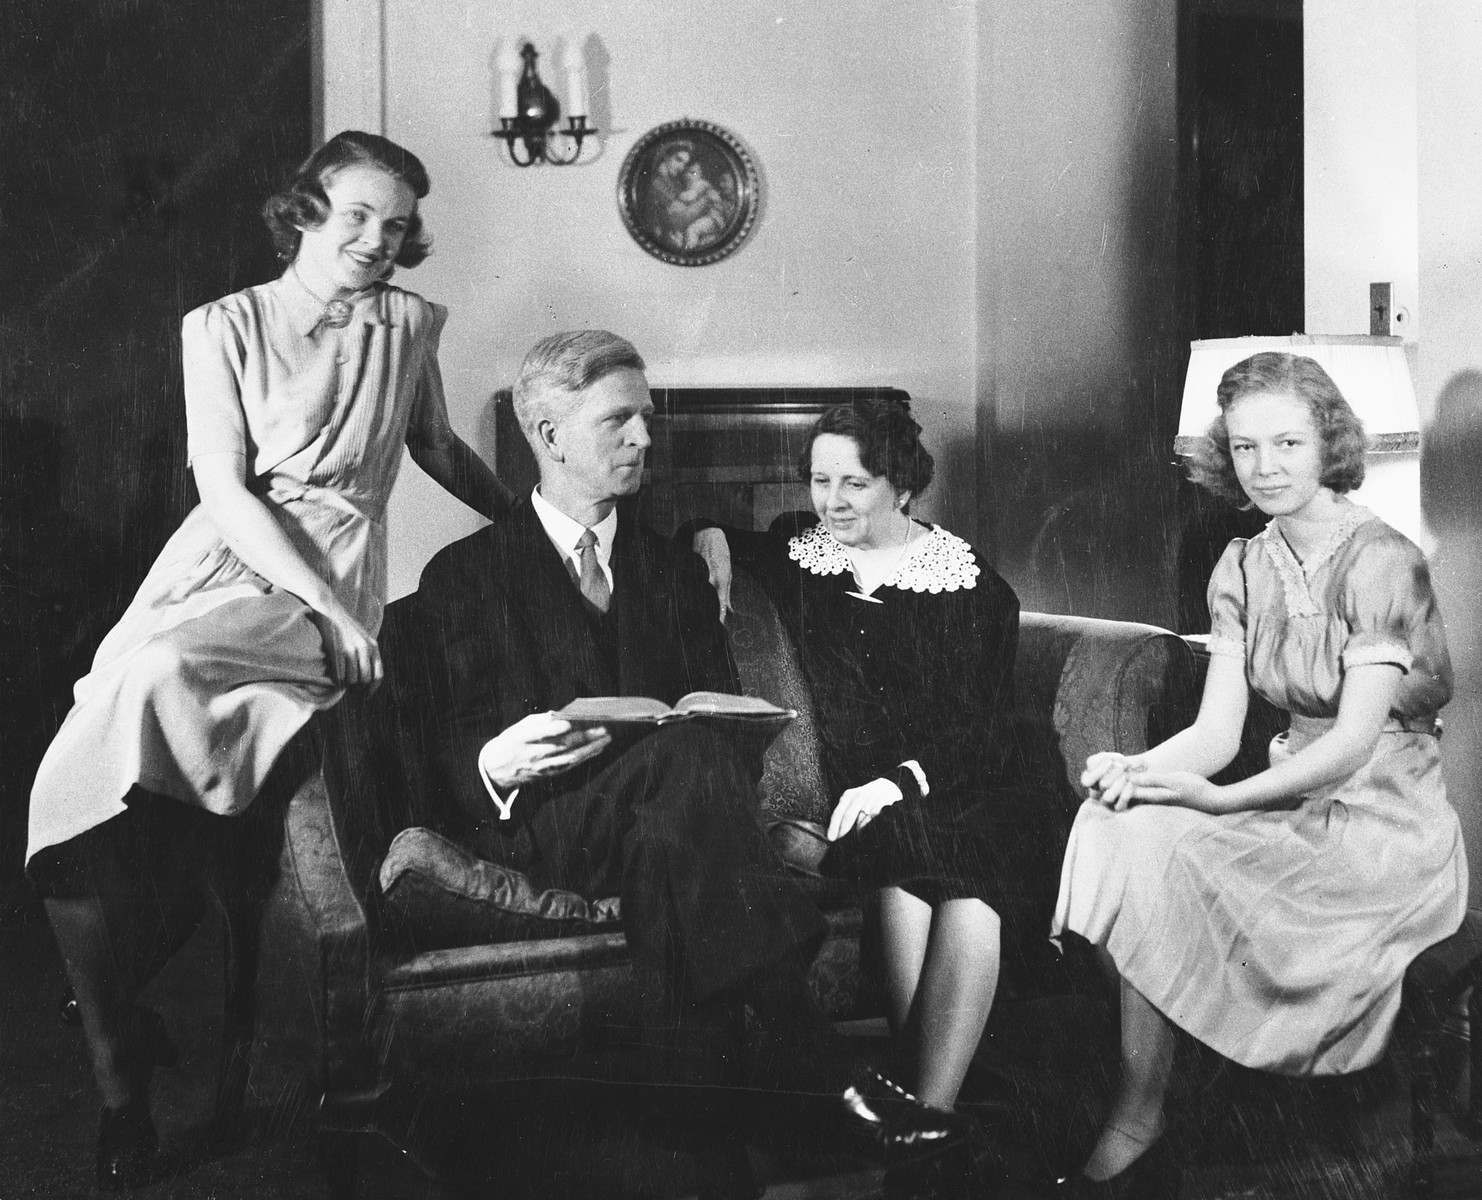 Studio portrait of the family of James G. McDonald in their home in Brooklyn.  Pictured from left to right are: Janet, James, Ruth, and Barbara McDonald.